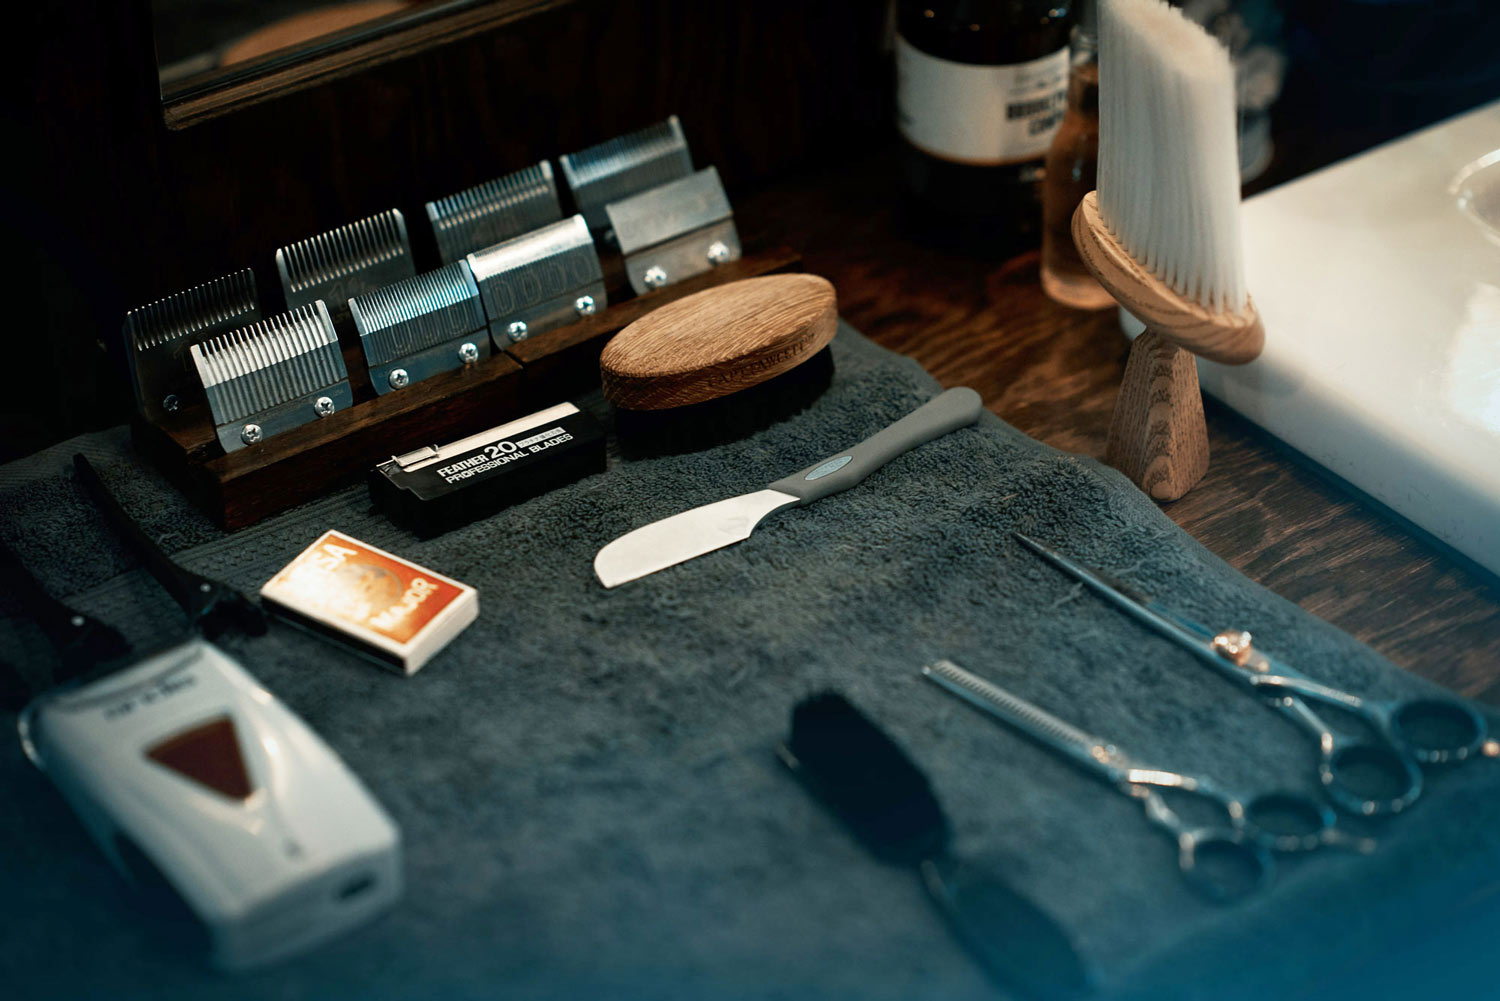 The barber equipment, from a cinematic story about the barber.